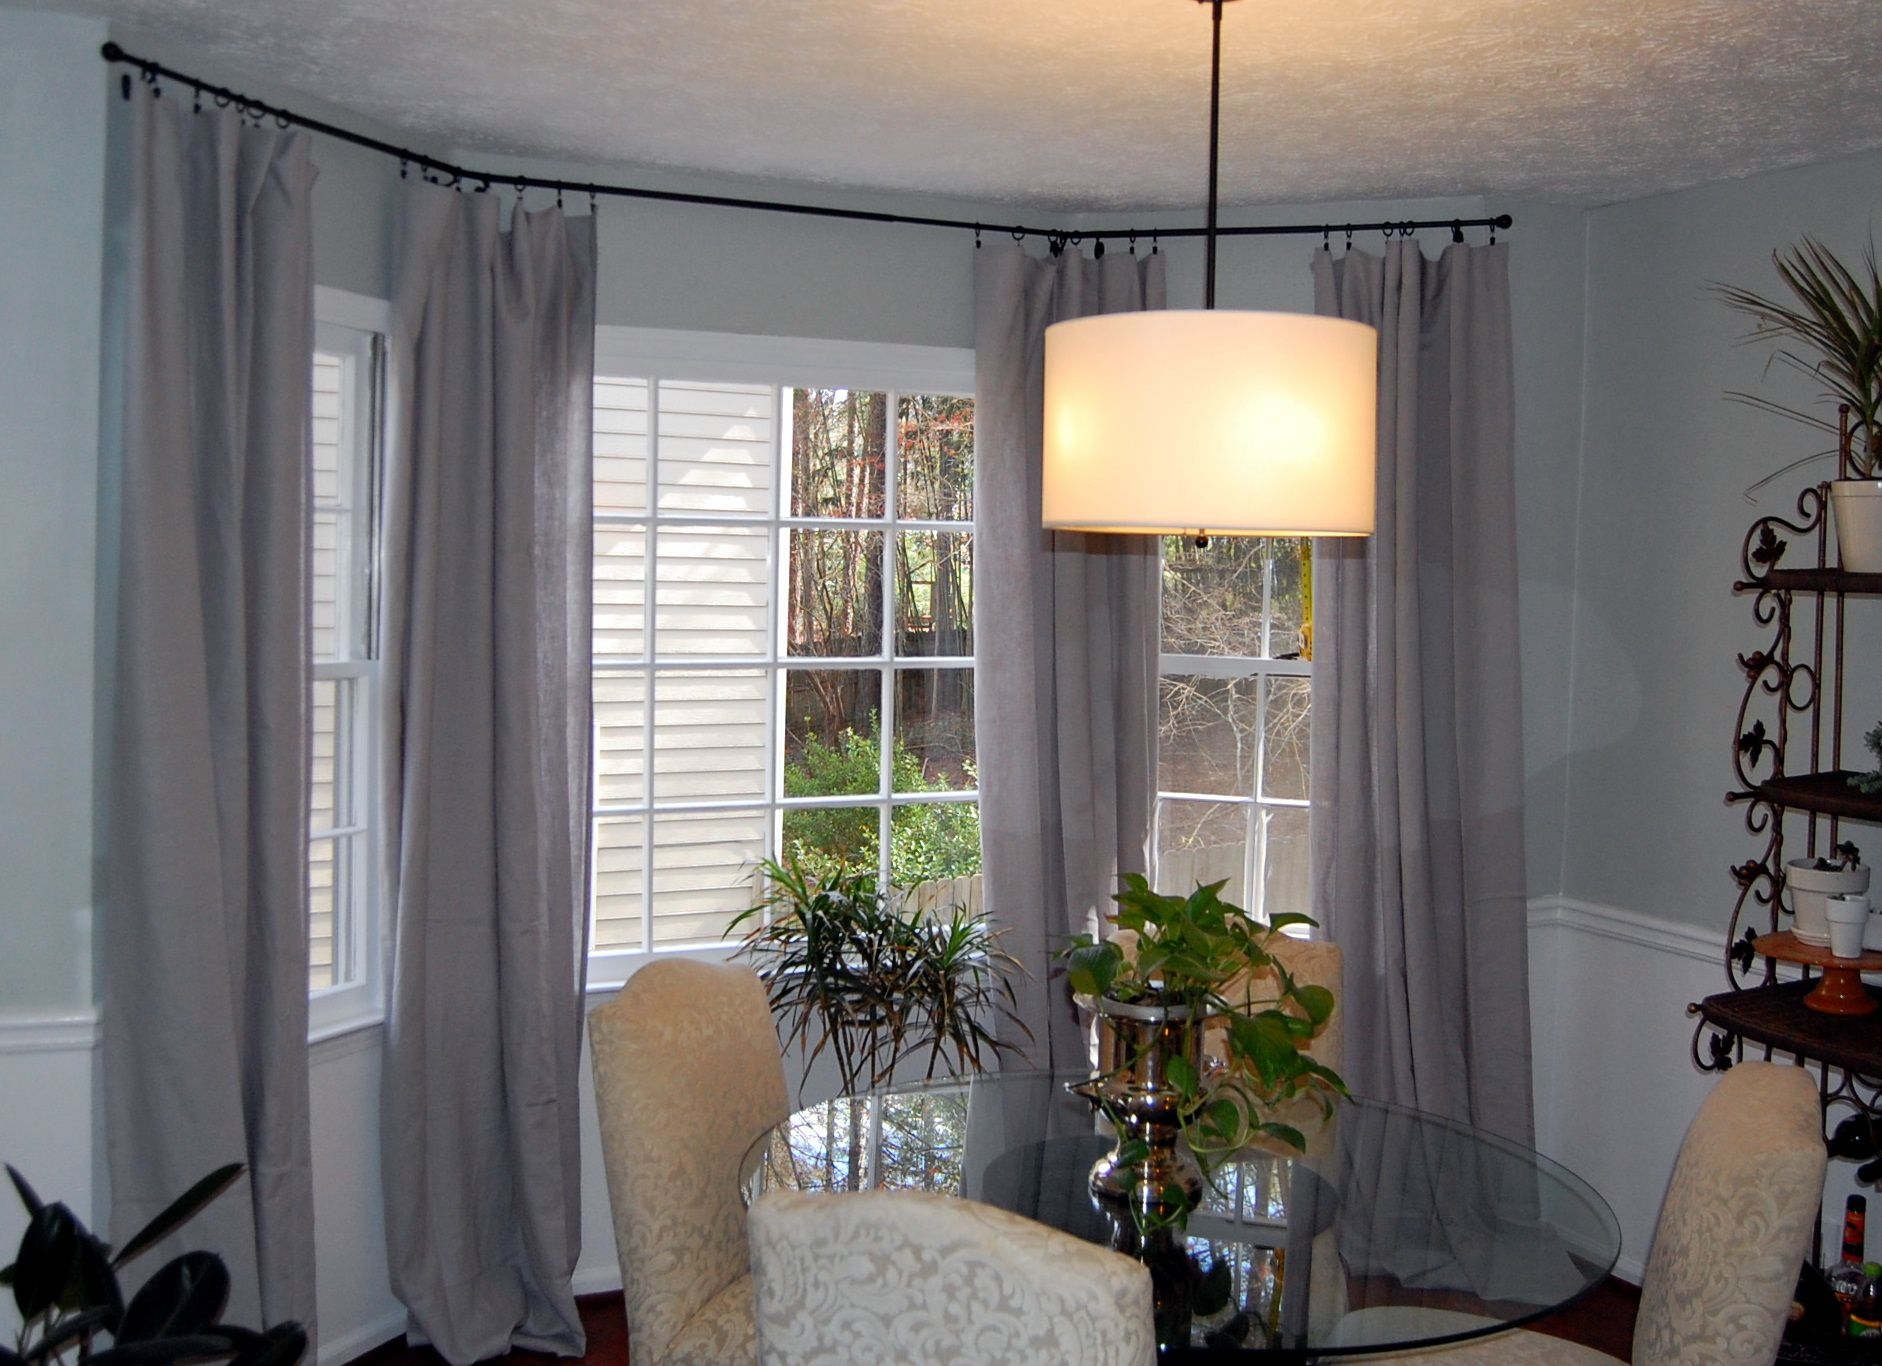 Kitchen nook window treatments  pin by mahal anderson on home  pinterest  room